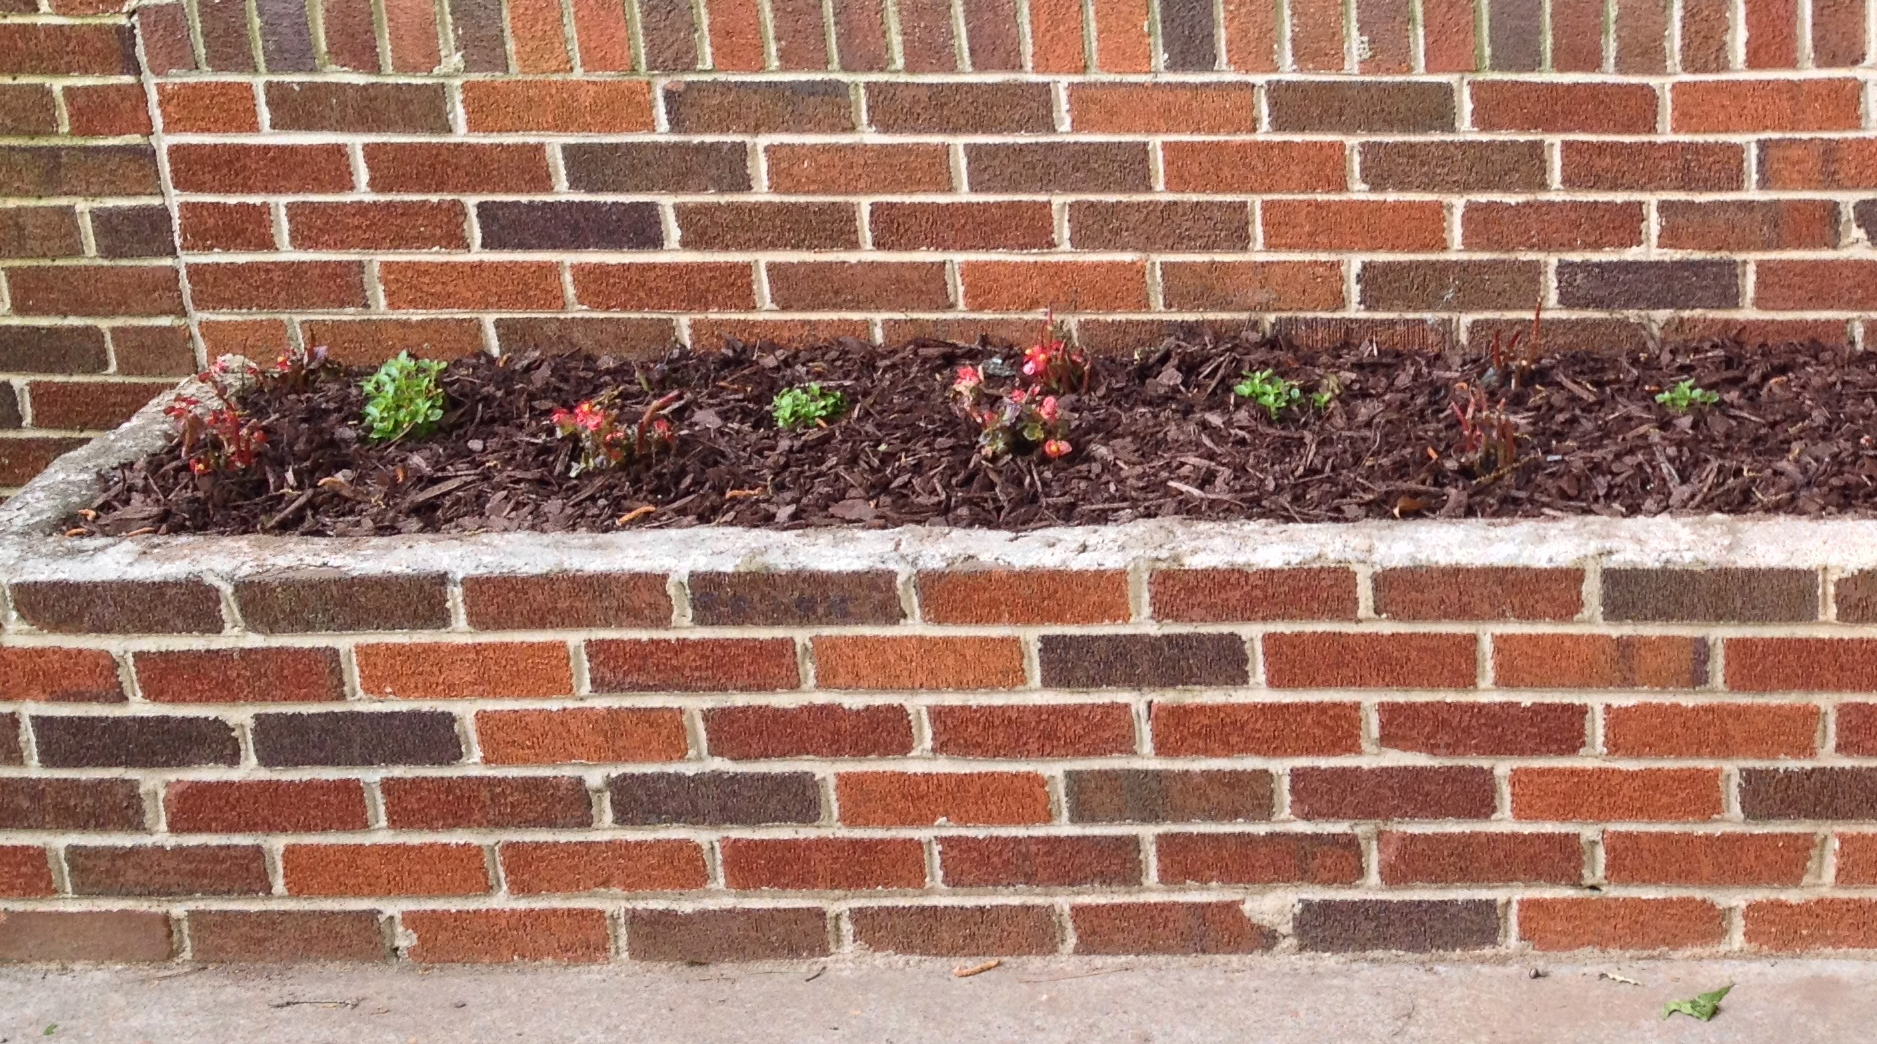 Planter Box Flowerbed